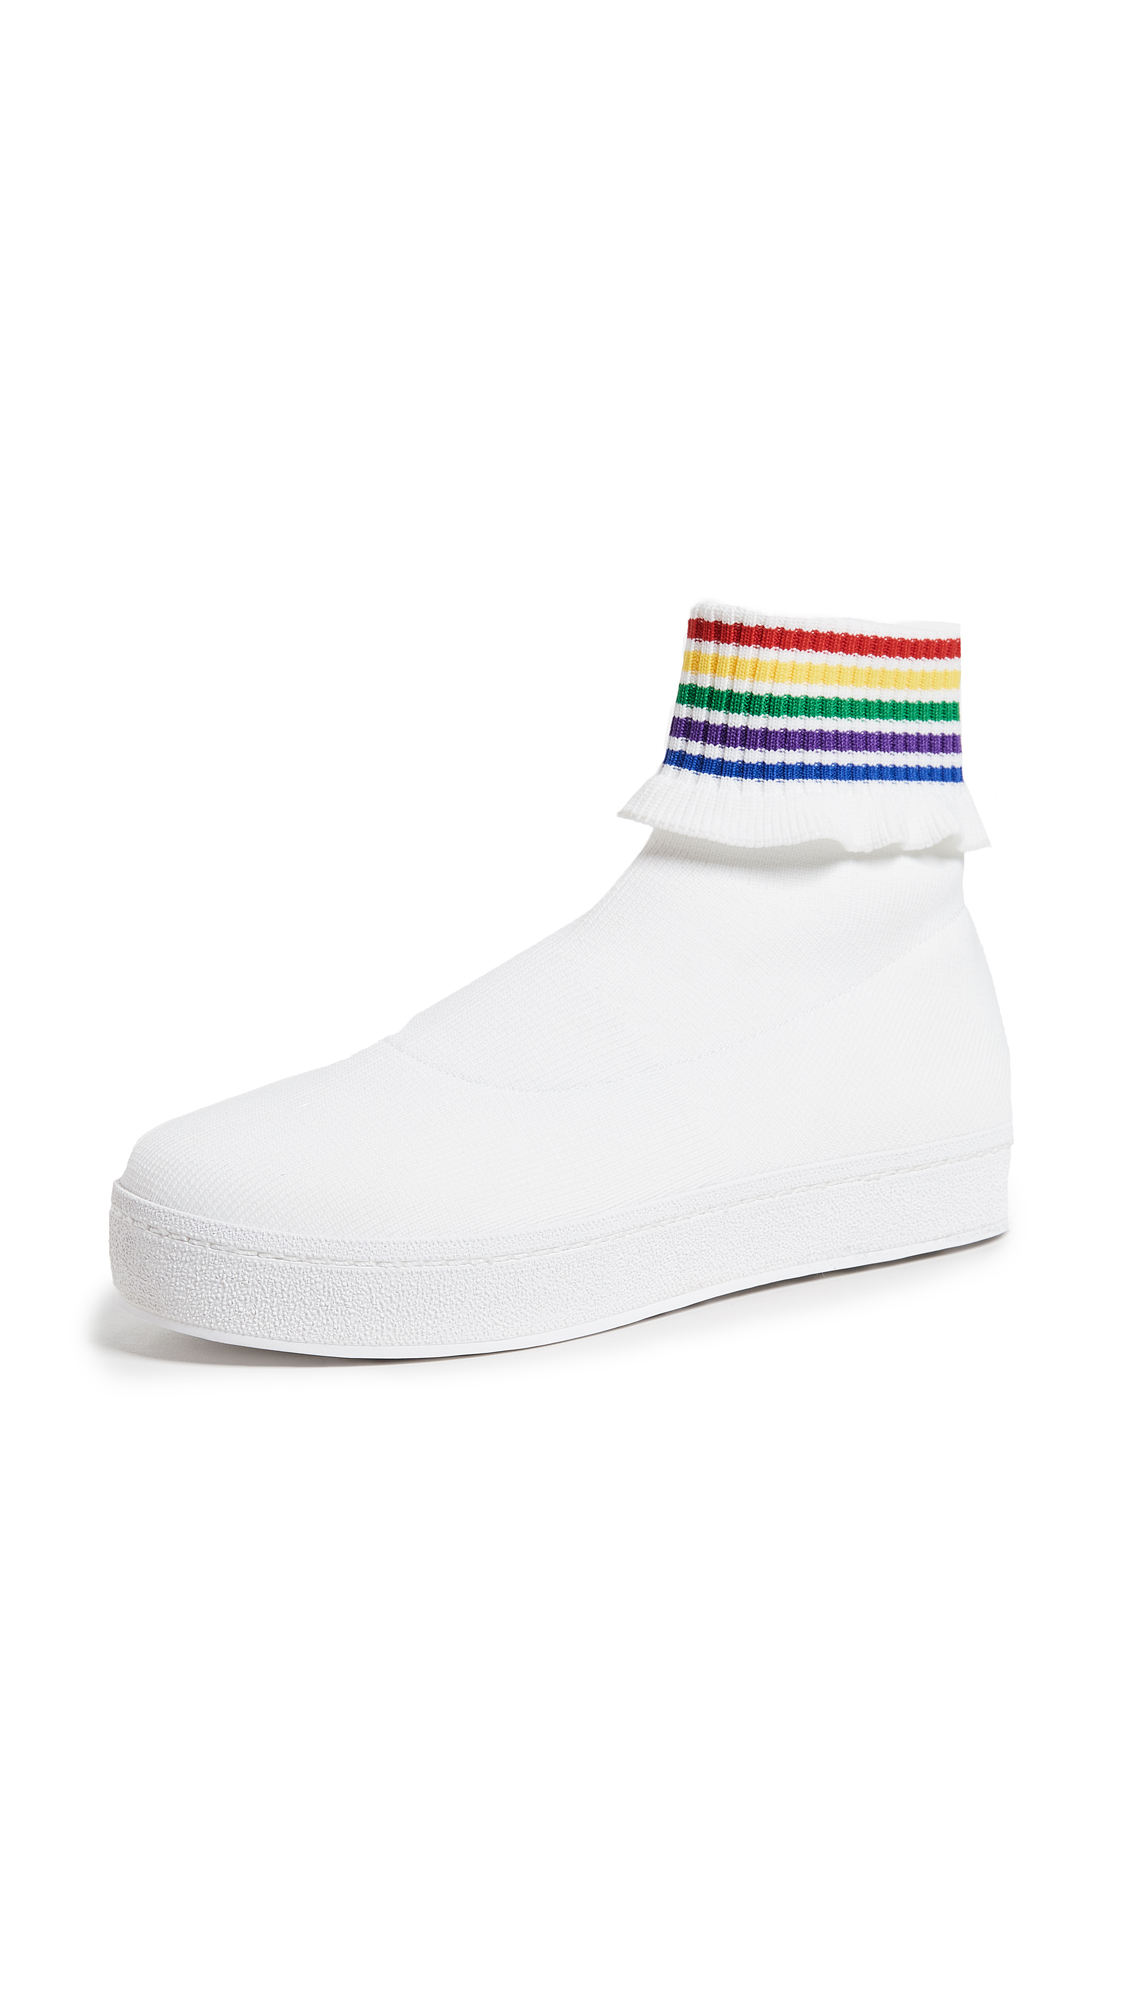 Opening Ceremony Bobby Sneakers - White Multi